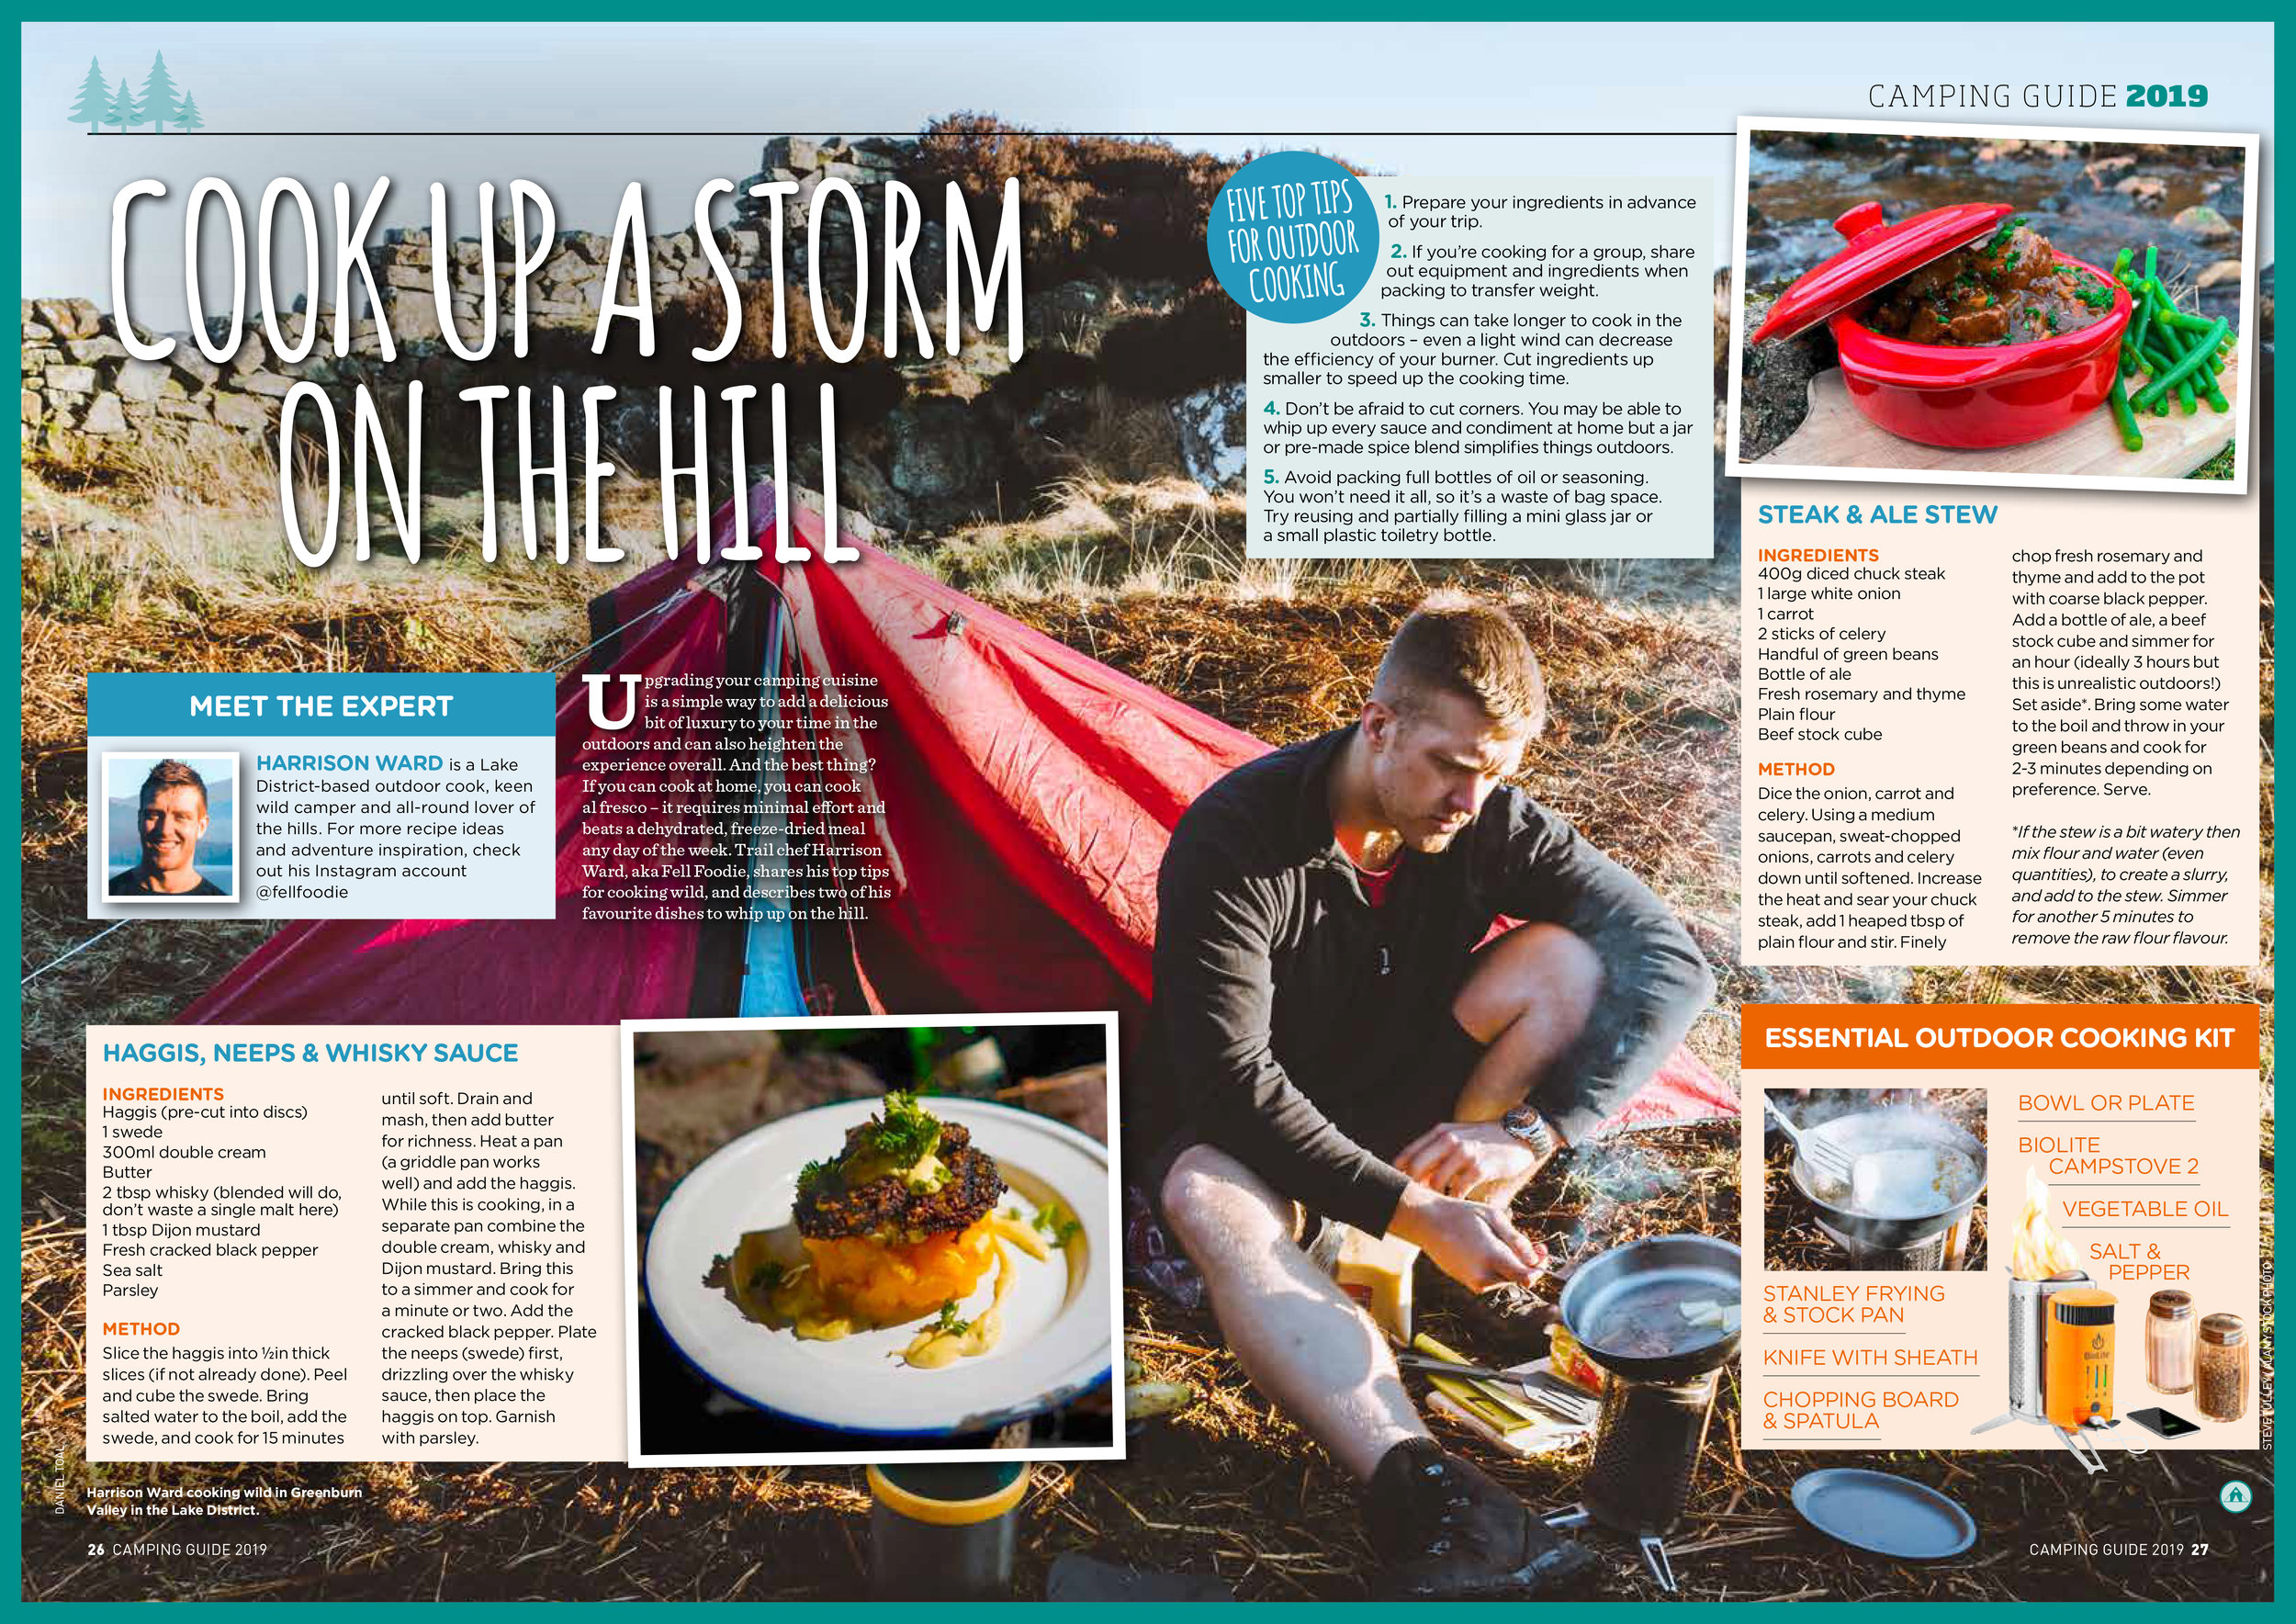 Trail Magazine & Country Walking Magazine: Words by Harrison Ward (Fell Foodie), Background image by myself.